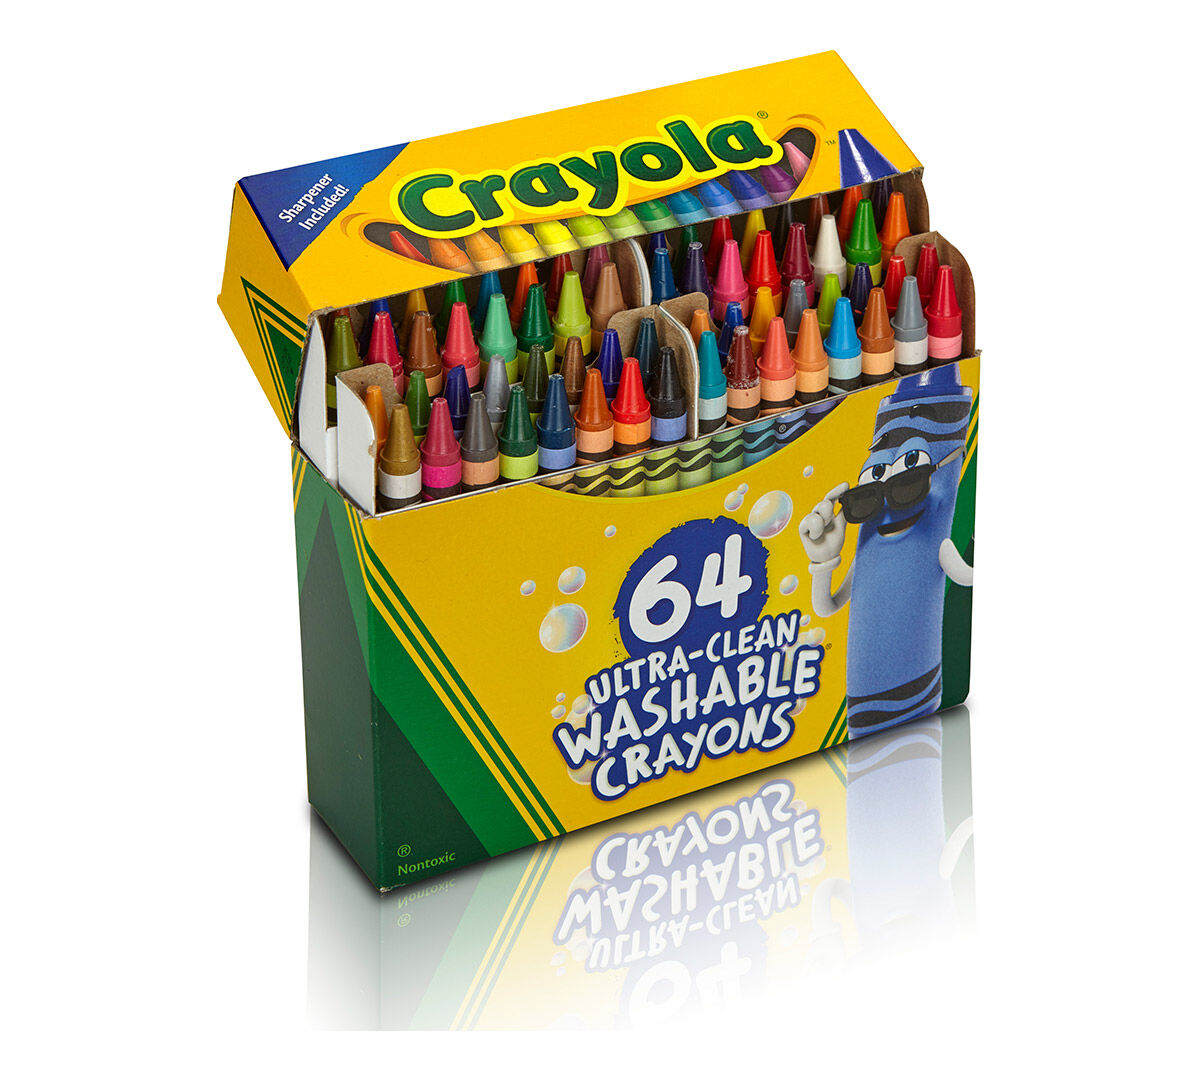 Crayola Ultra-Clean Washable Crayons; 64 count; Art Tools ...